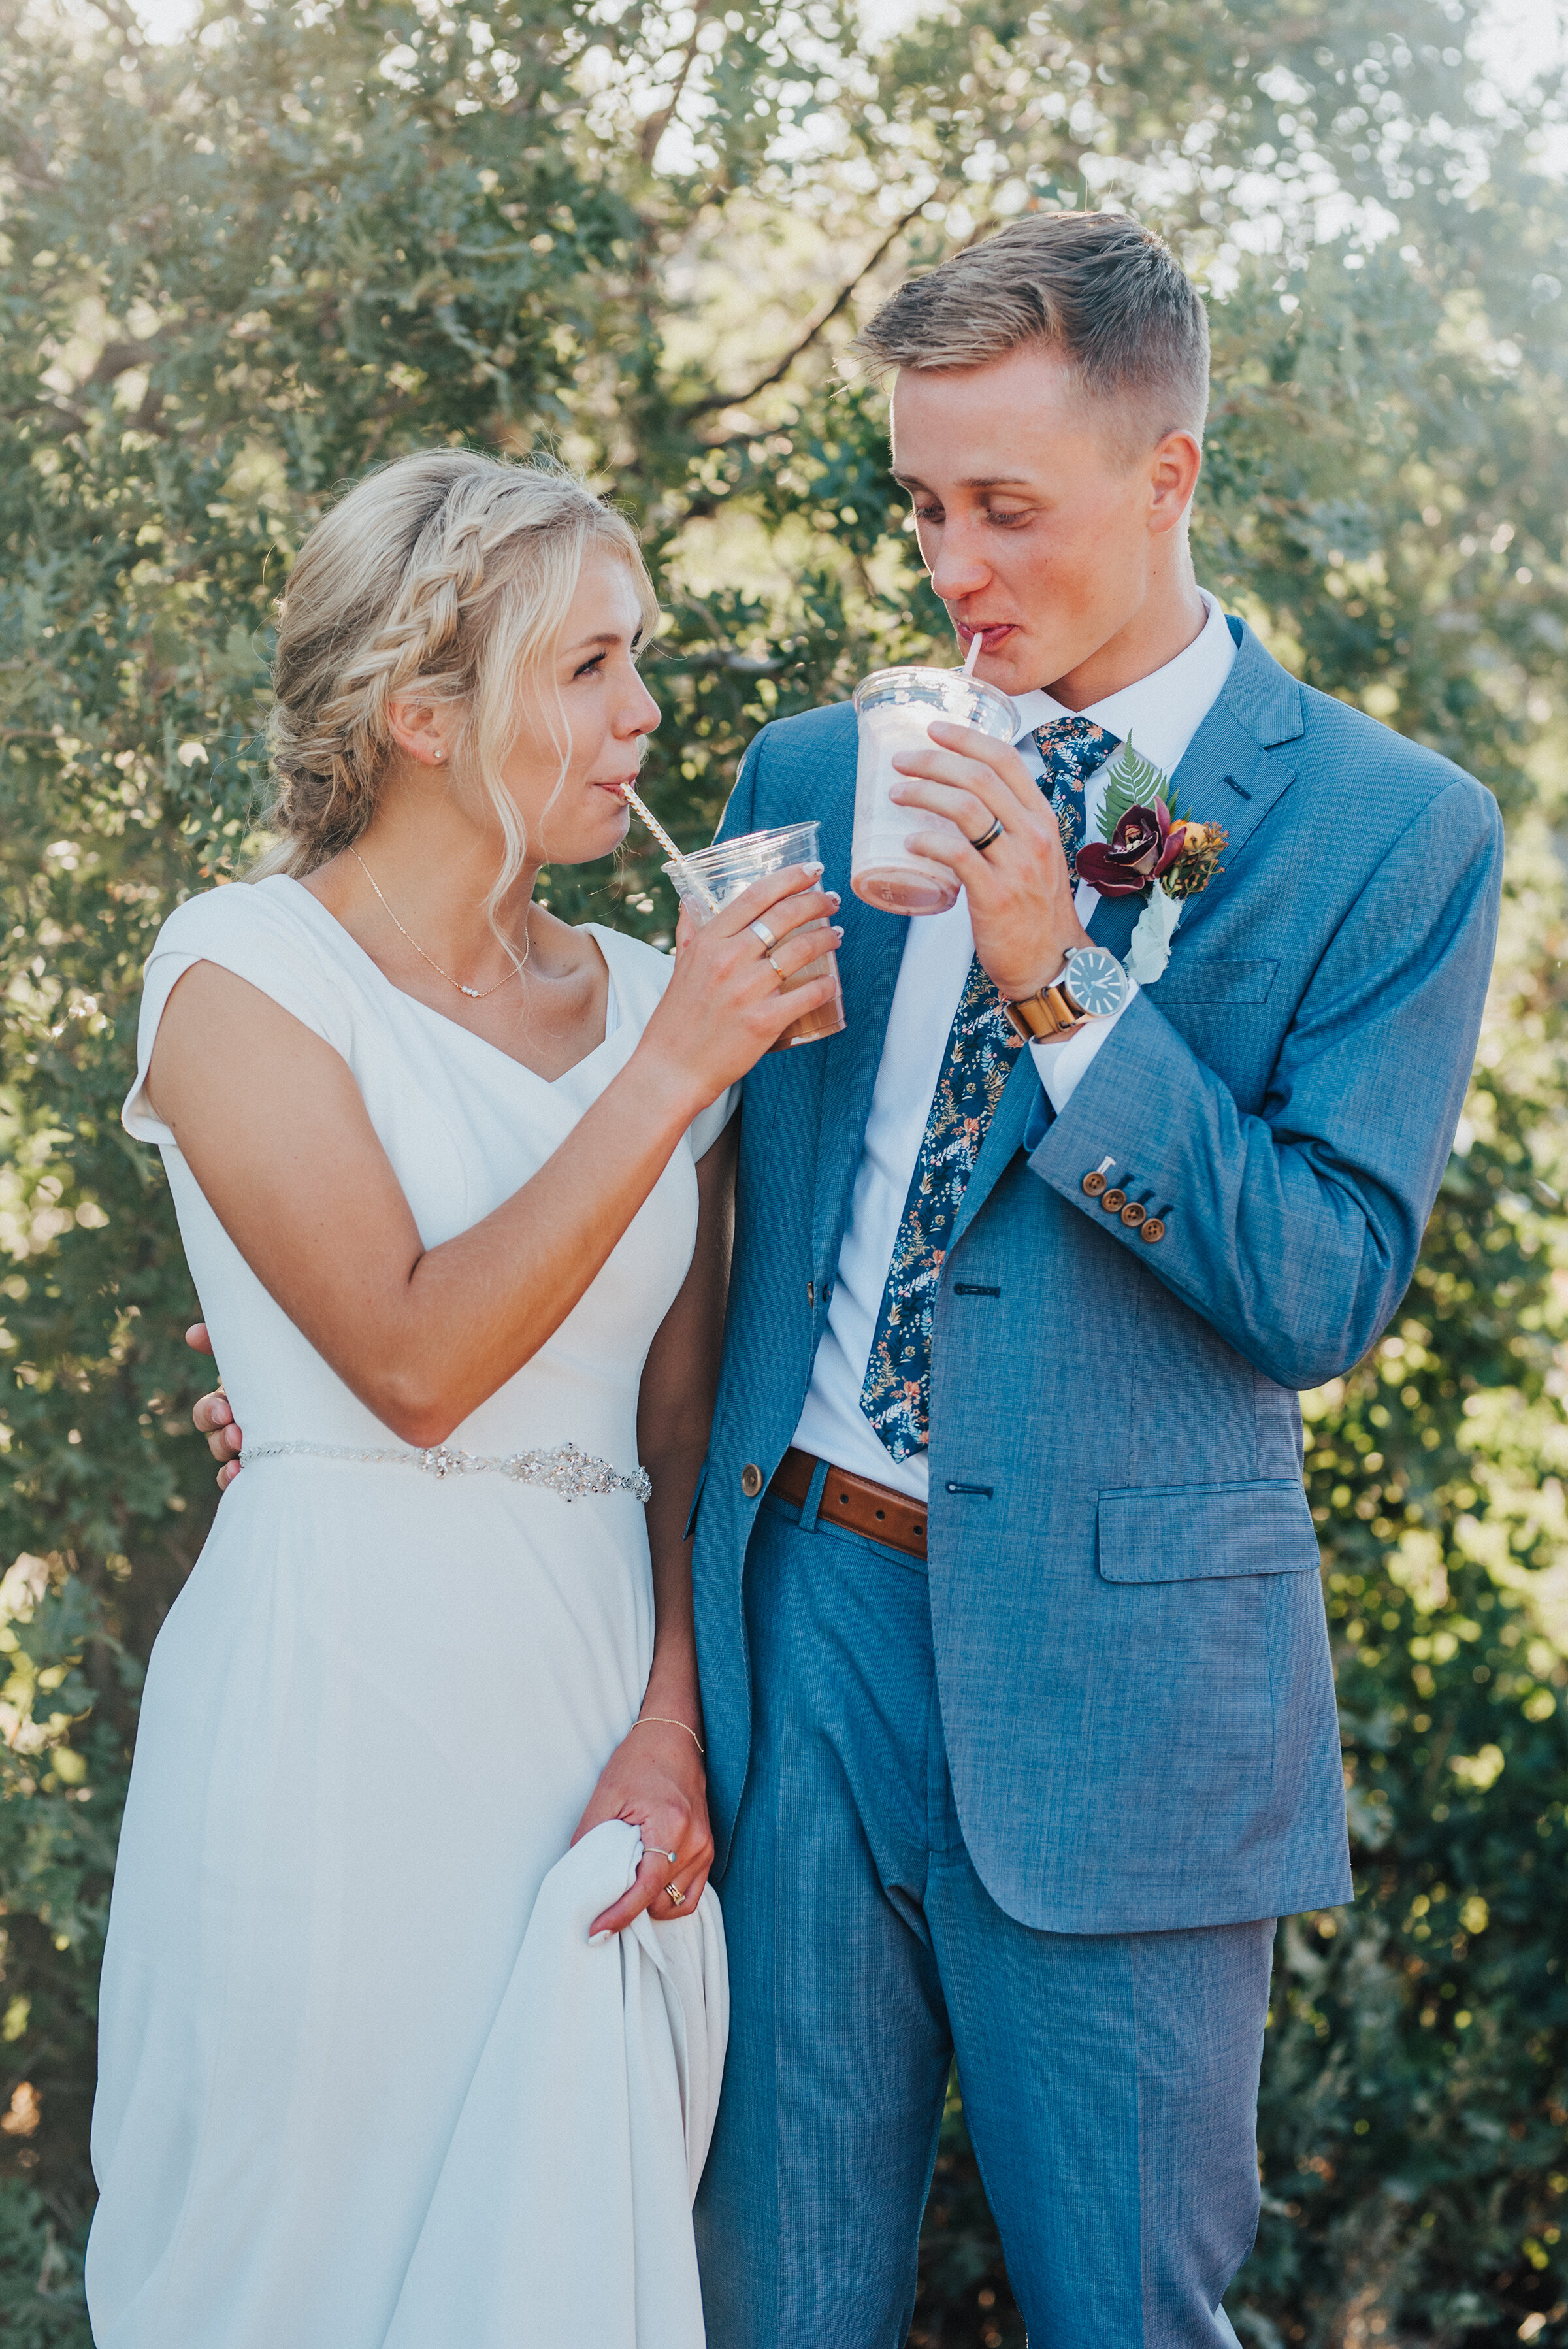 Cute newlyweds sipping drinks at their socially distant wedding reception in Park City. Kristi Alyse Photography Logan Utah photographer Park City wedding photographer Drive-Thru wedding COVID wedding neon signs socially distant wedding bride and groom #kristialysephotography #weddingphotographer #utahweddings #parkcity #utahbrides #drivethruwedding #covidwedding #LoganUtahphotographer #utahweddingphotographer